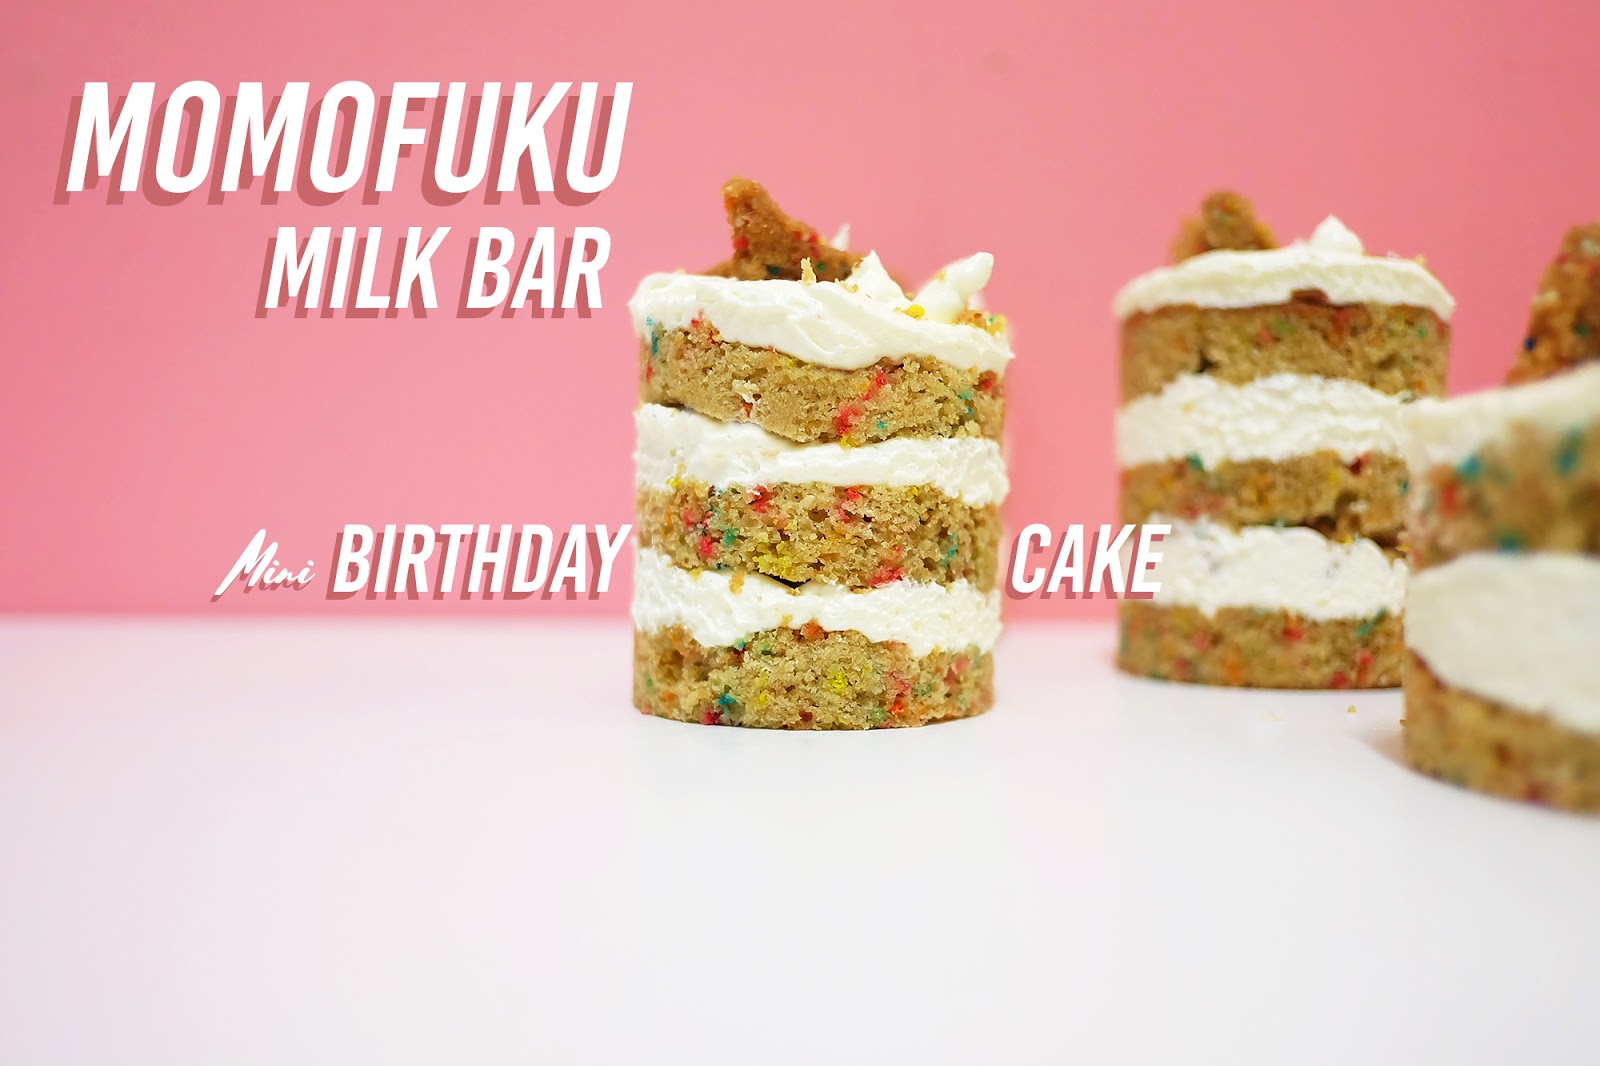 I Bought This Best Selling Cookbook Because Was Curious About The Taste Of Ultimate Milk Bar Birthday Cake Since